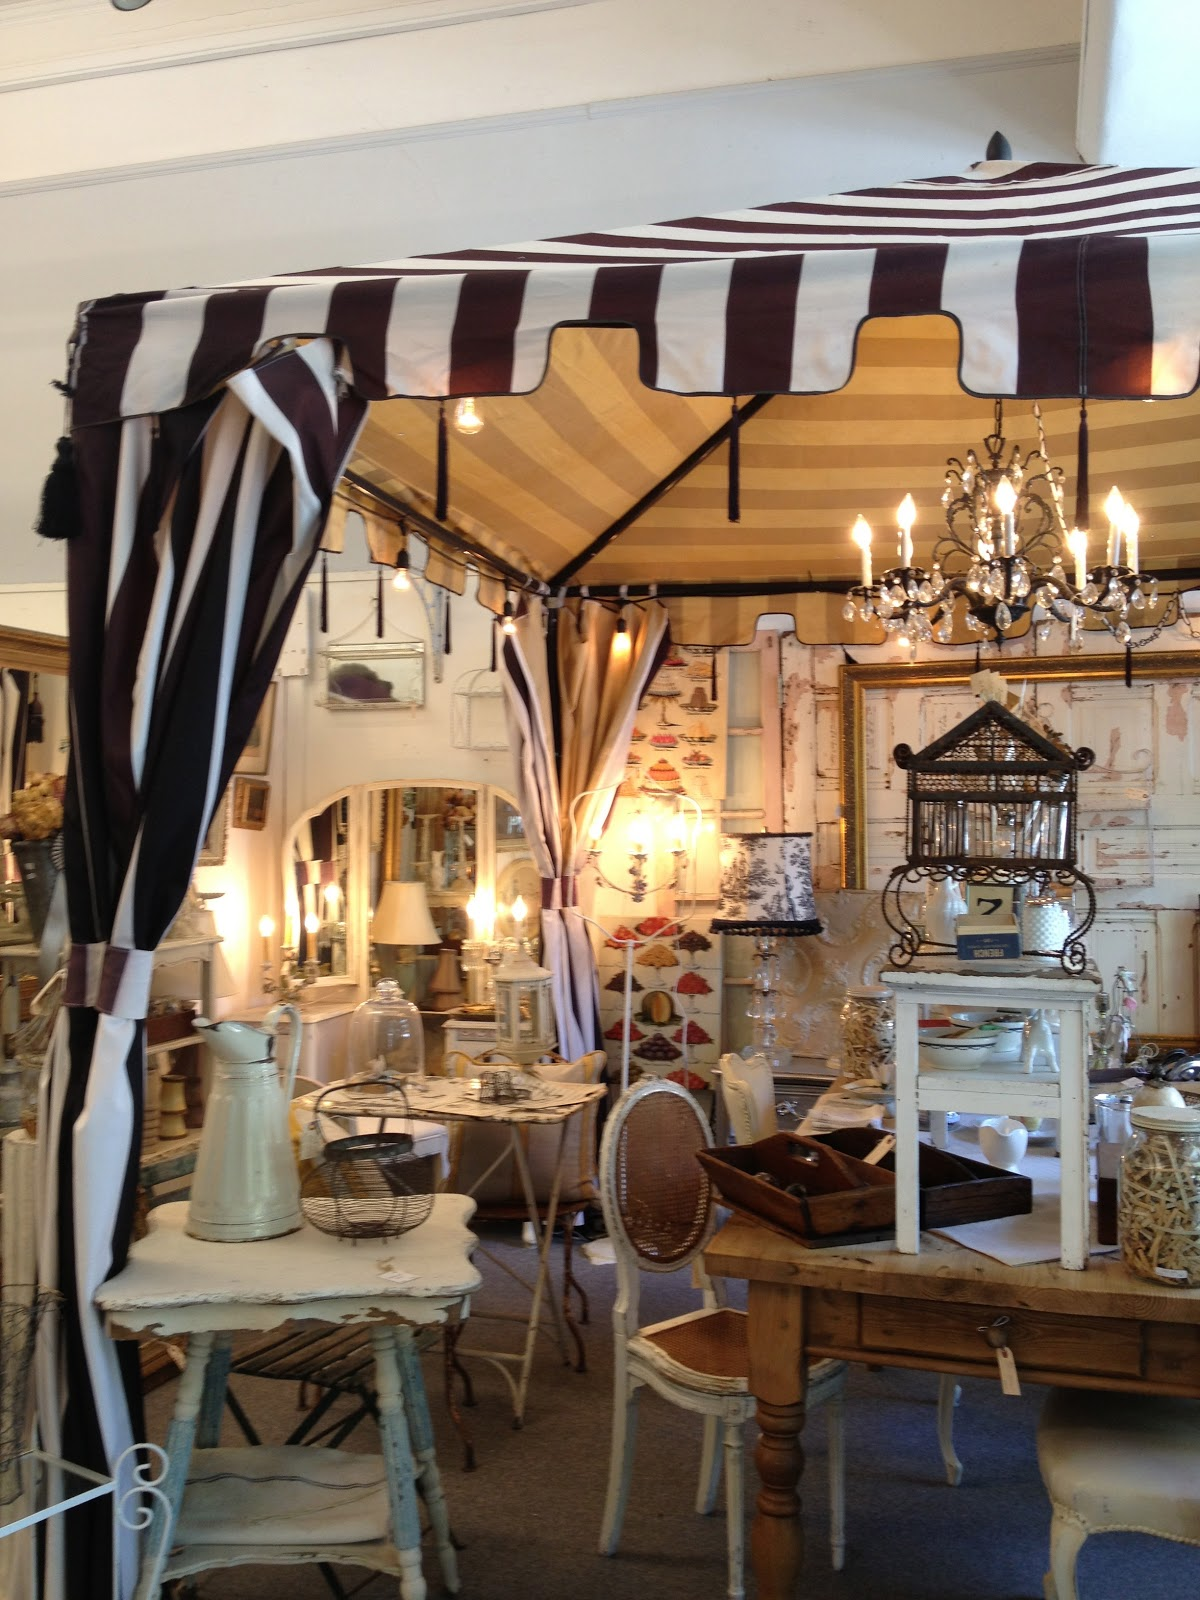 Vignette design wine country brocante finds for Wine country decorating style